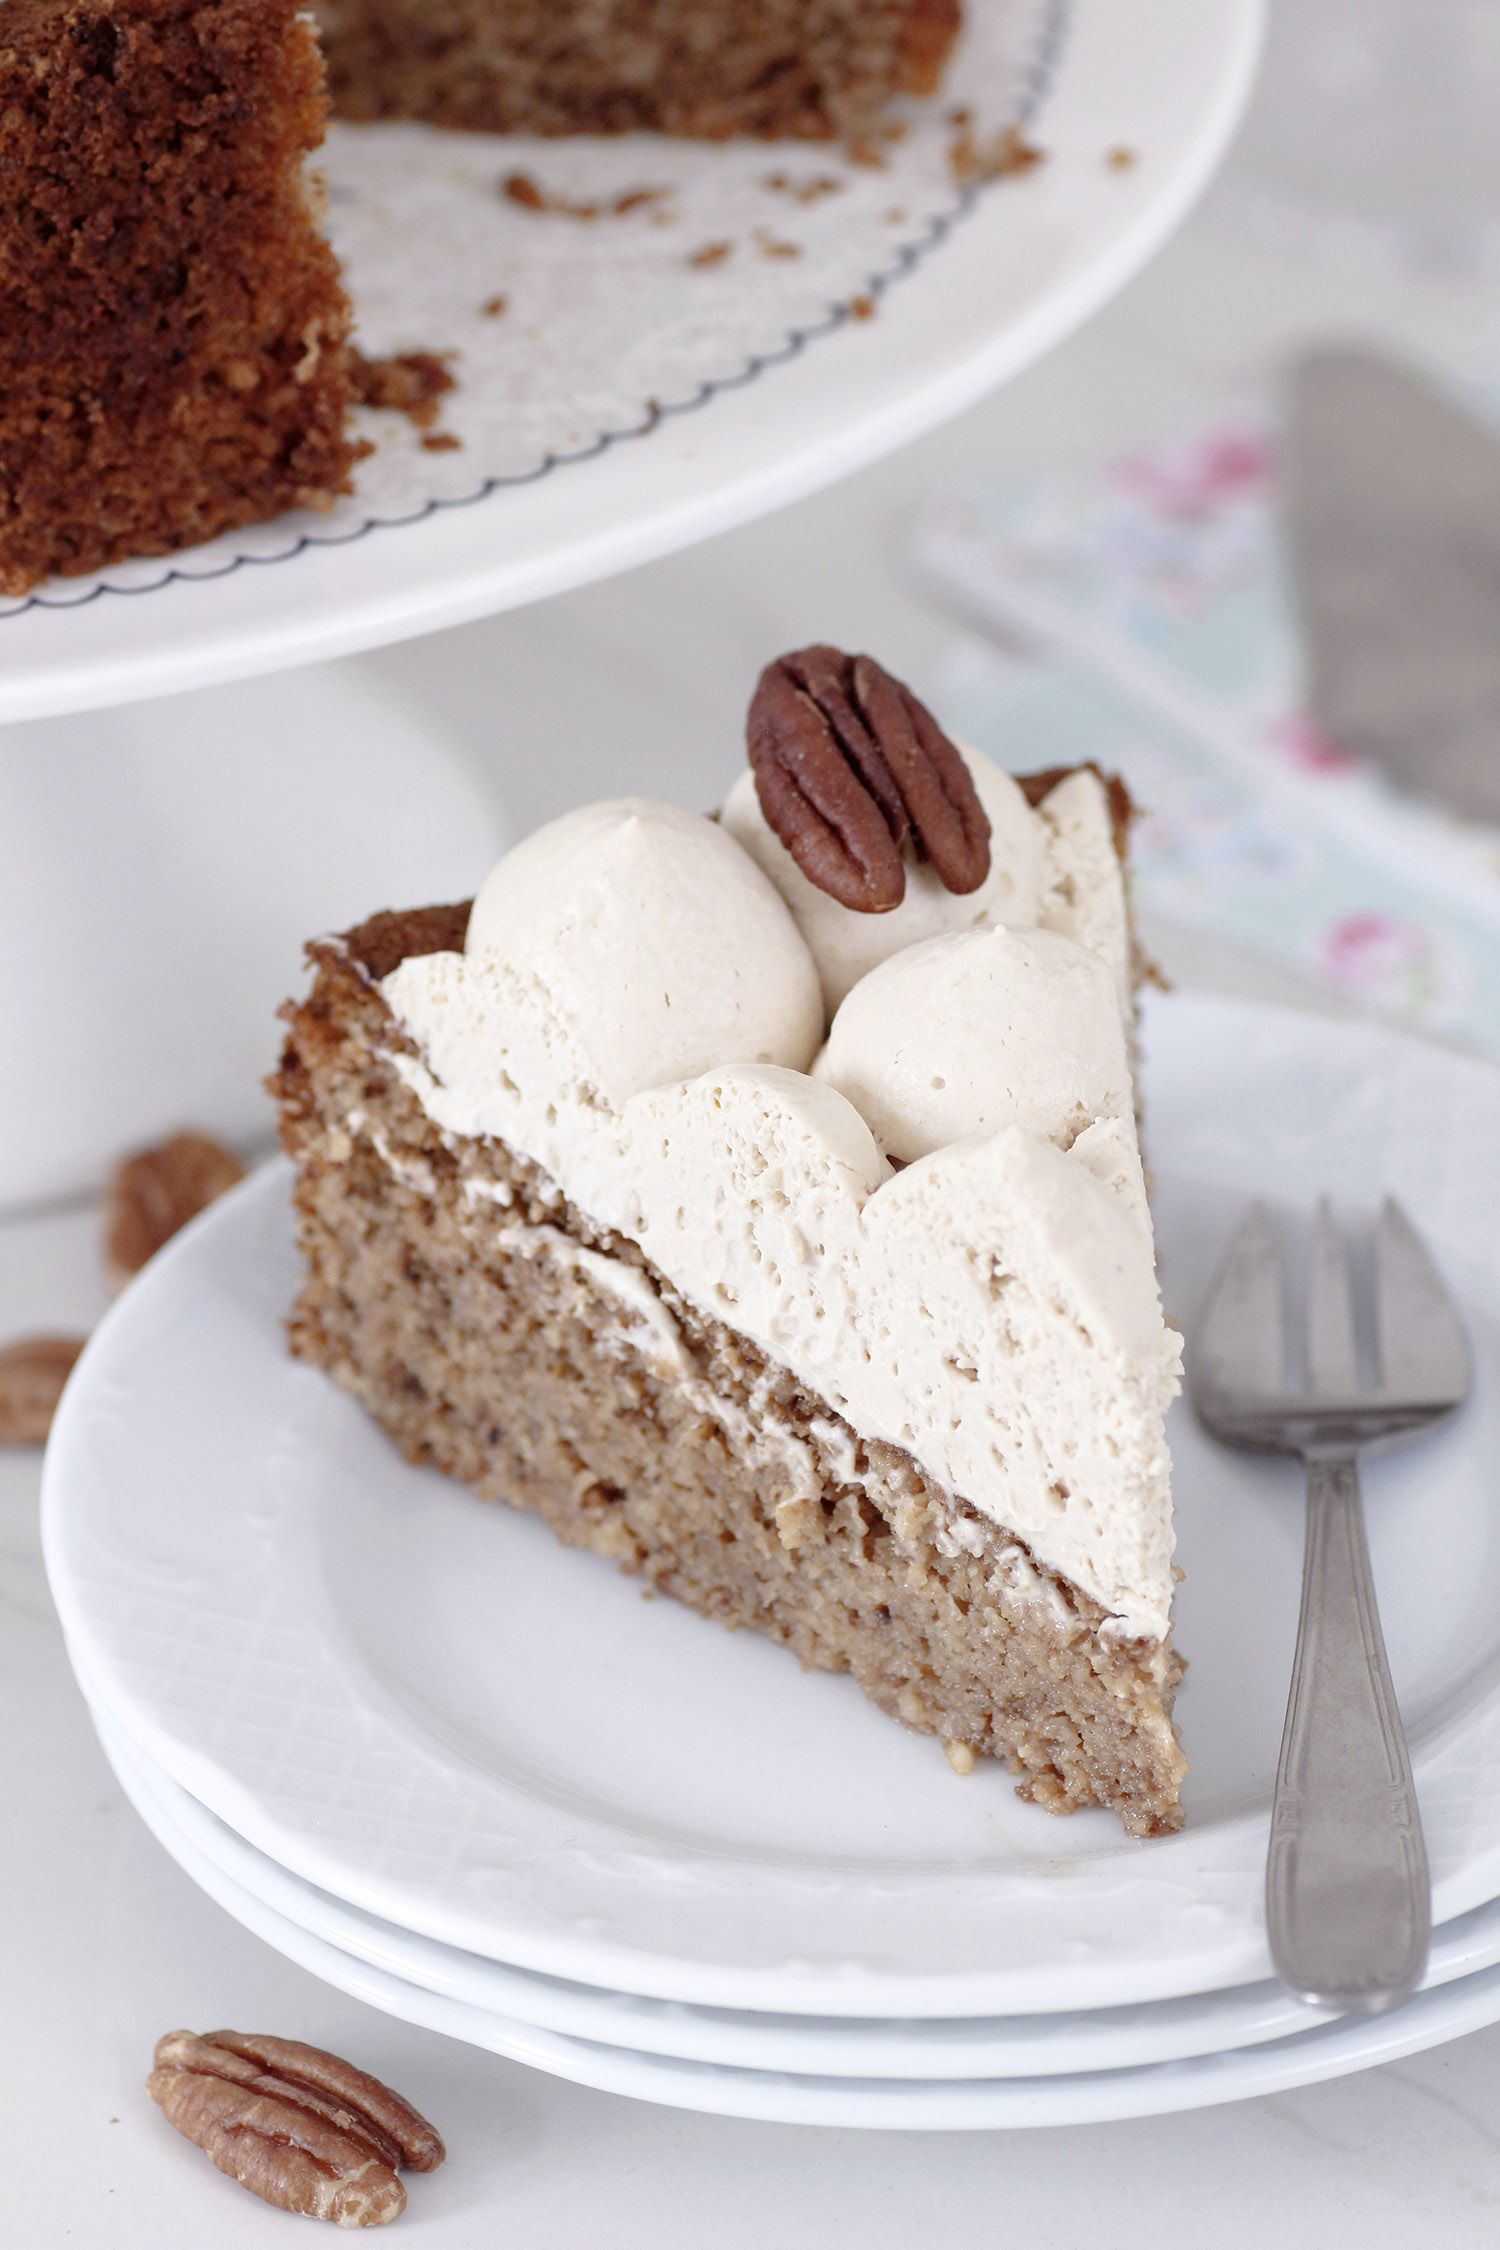 Nut Cake for Passover